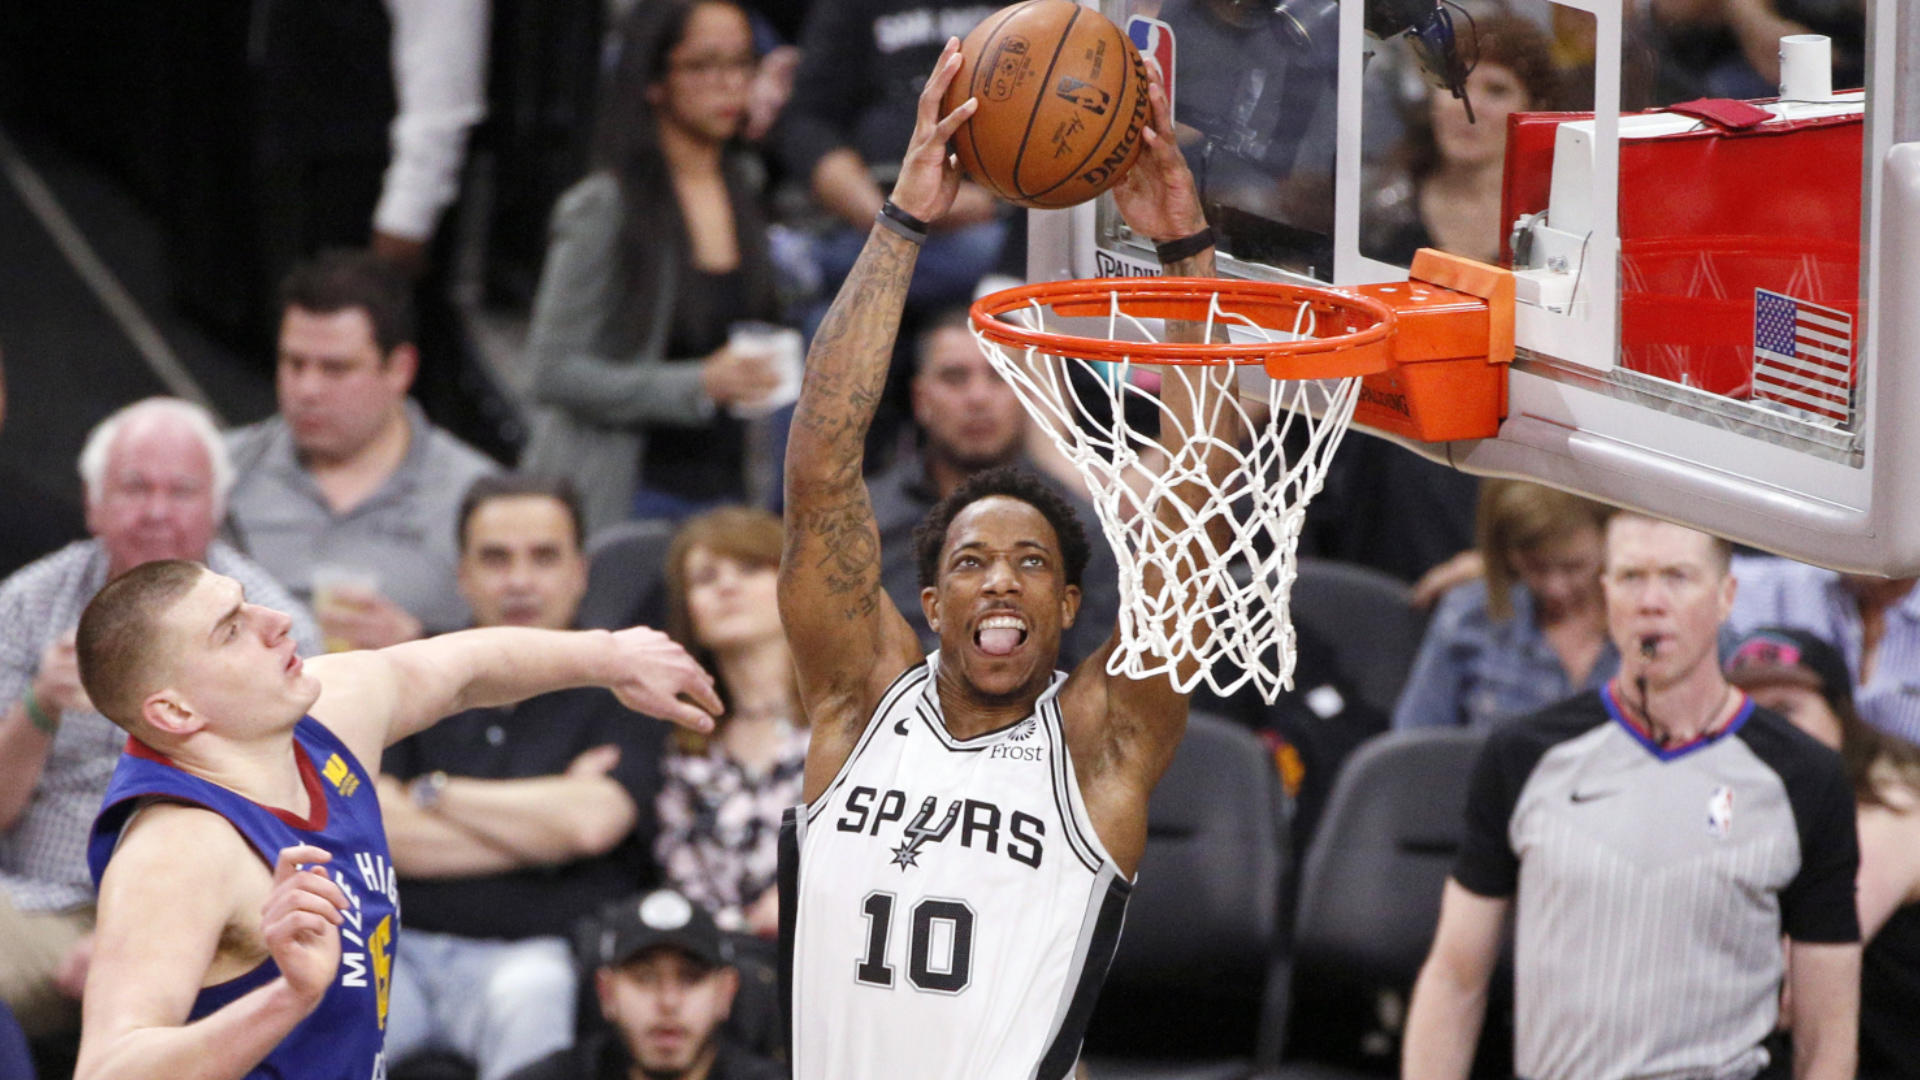 NBA Playoffs 2019: DeMar DeRozan ejected at end of Spurs' Game 4 loss to Nuggets for throwing ball at referee